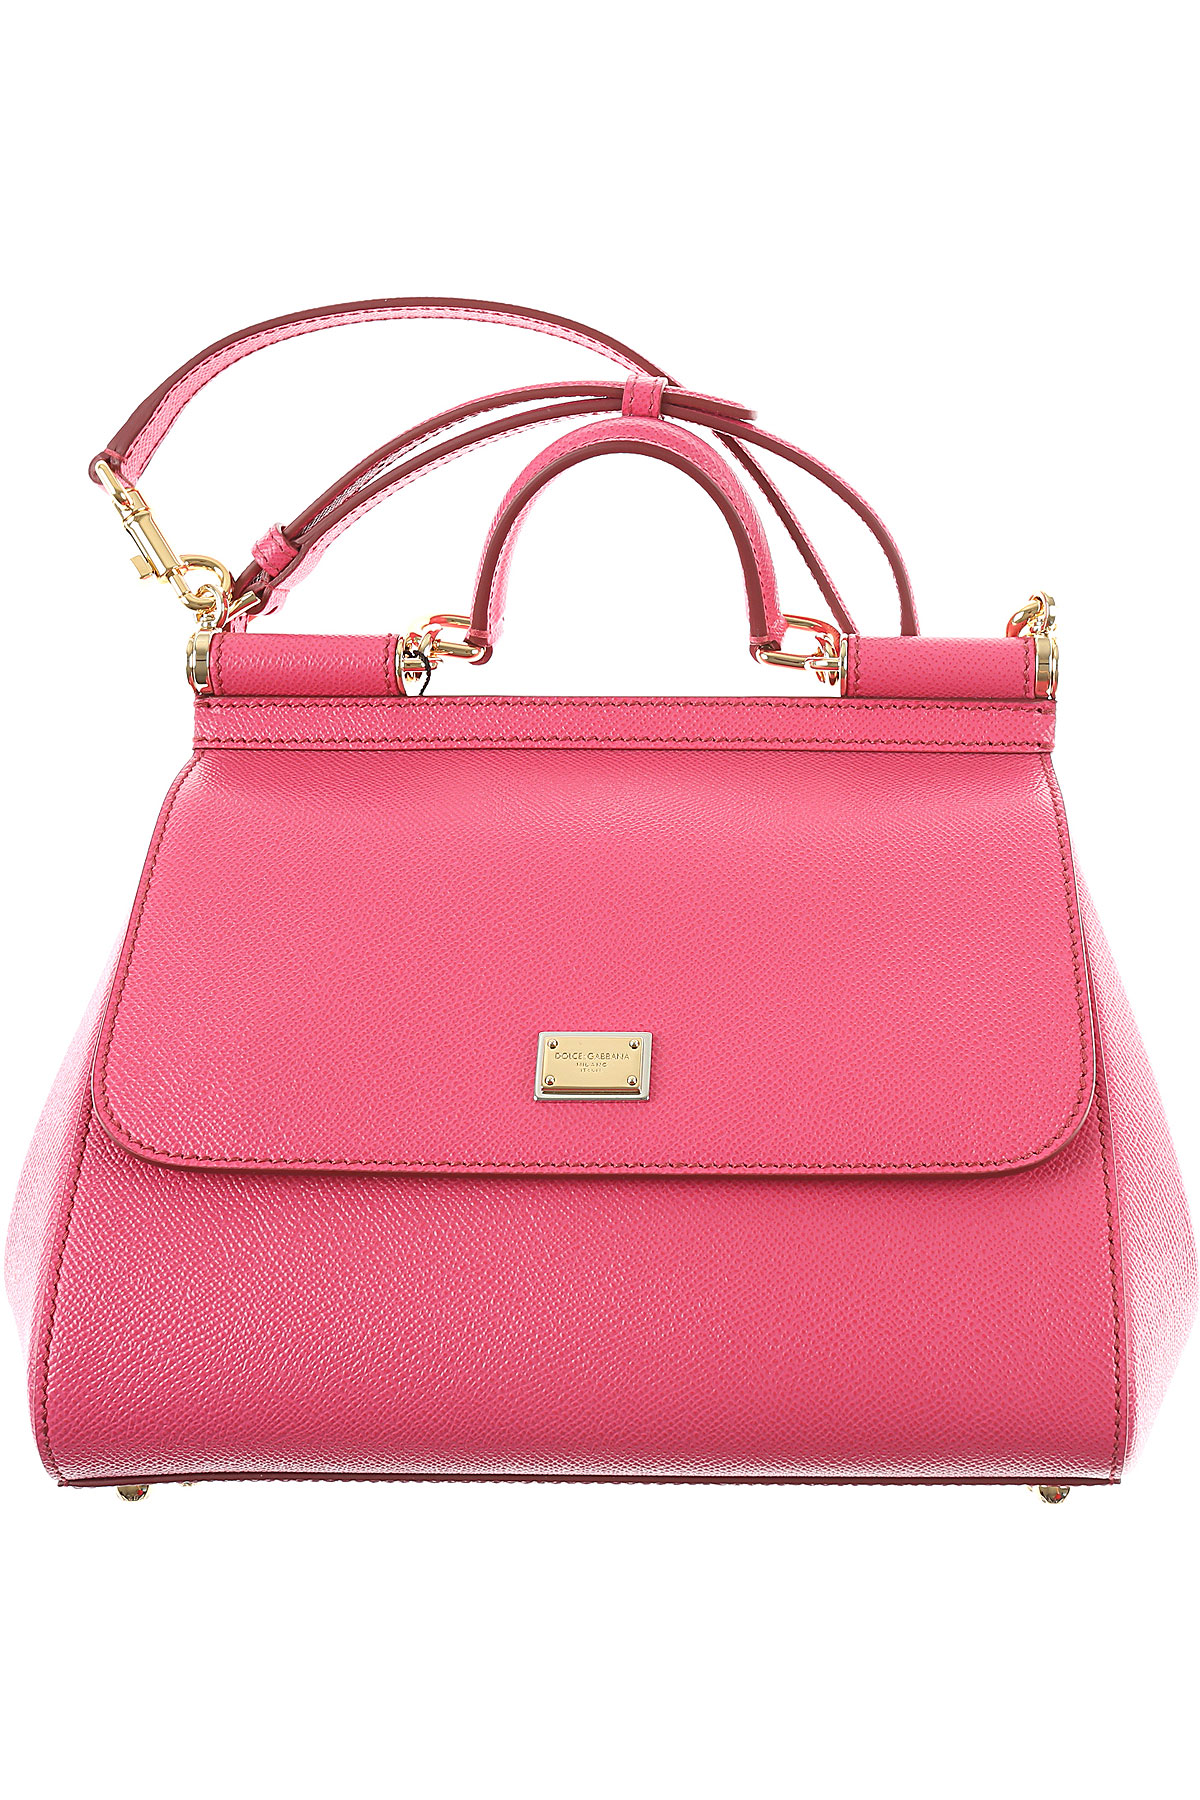 Dolce & Gabbana Tote Bag, Pink, Leather, 2017